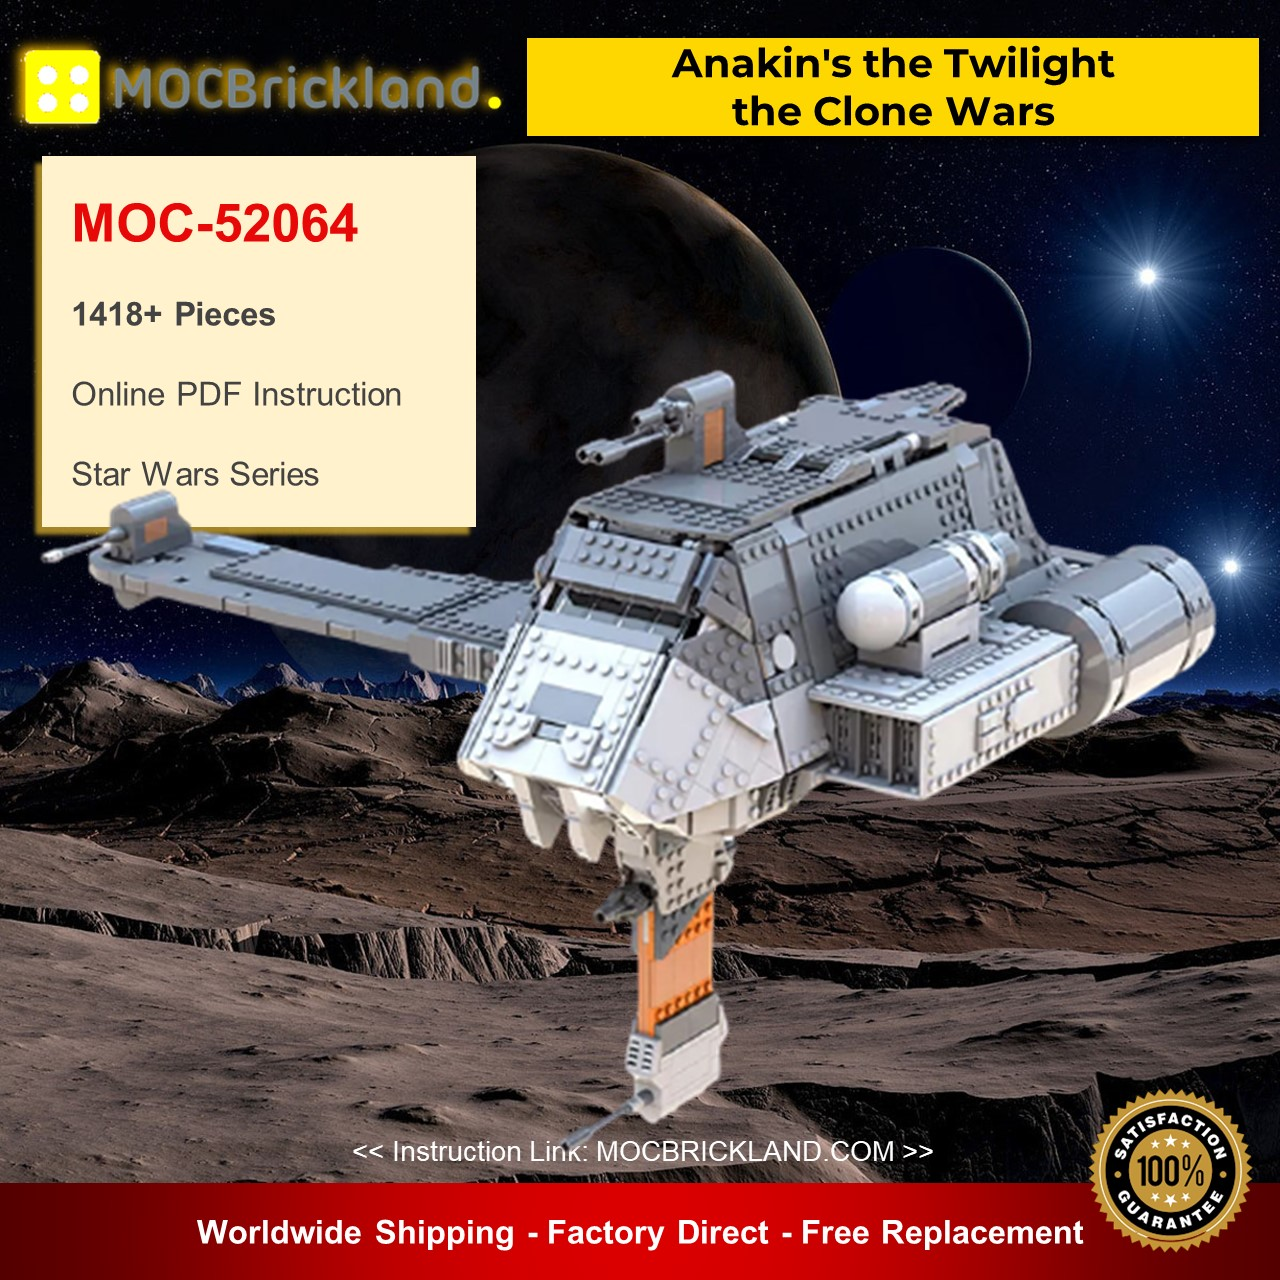 MOC-52064 Star Wars Anakin's the Twilight – the Clone Wars Designed By Bruxxy 1418 Pieces